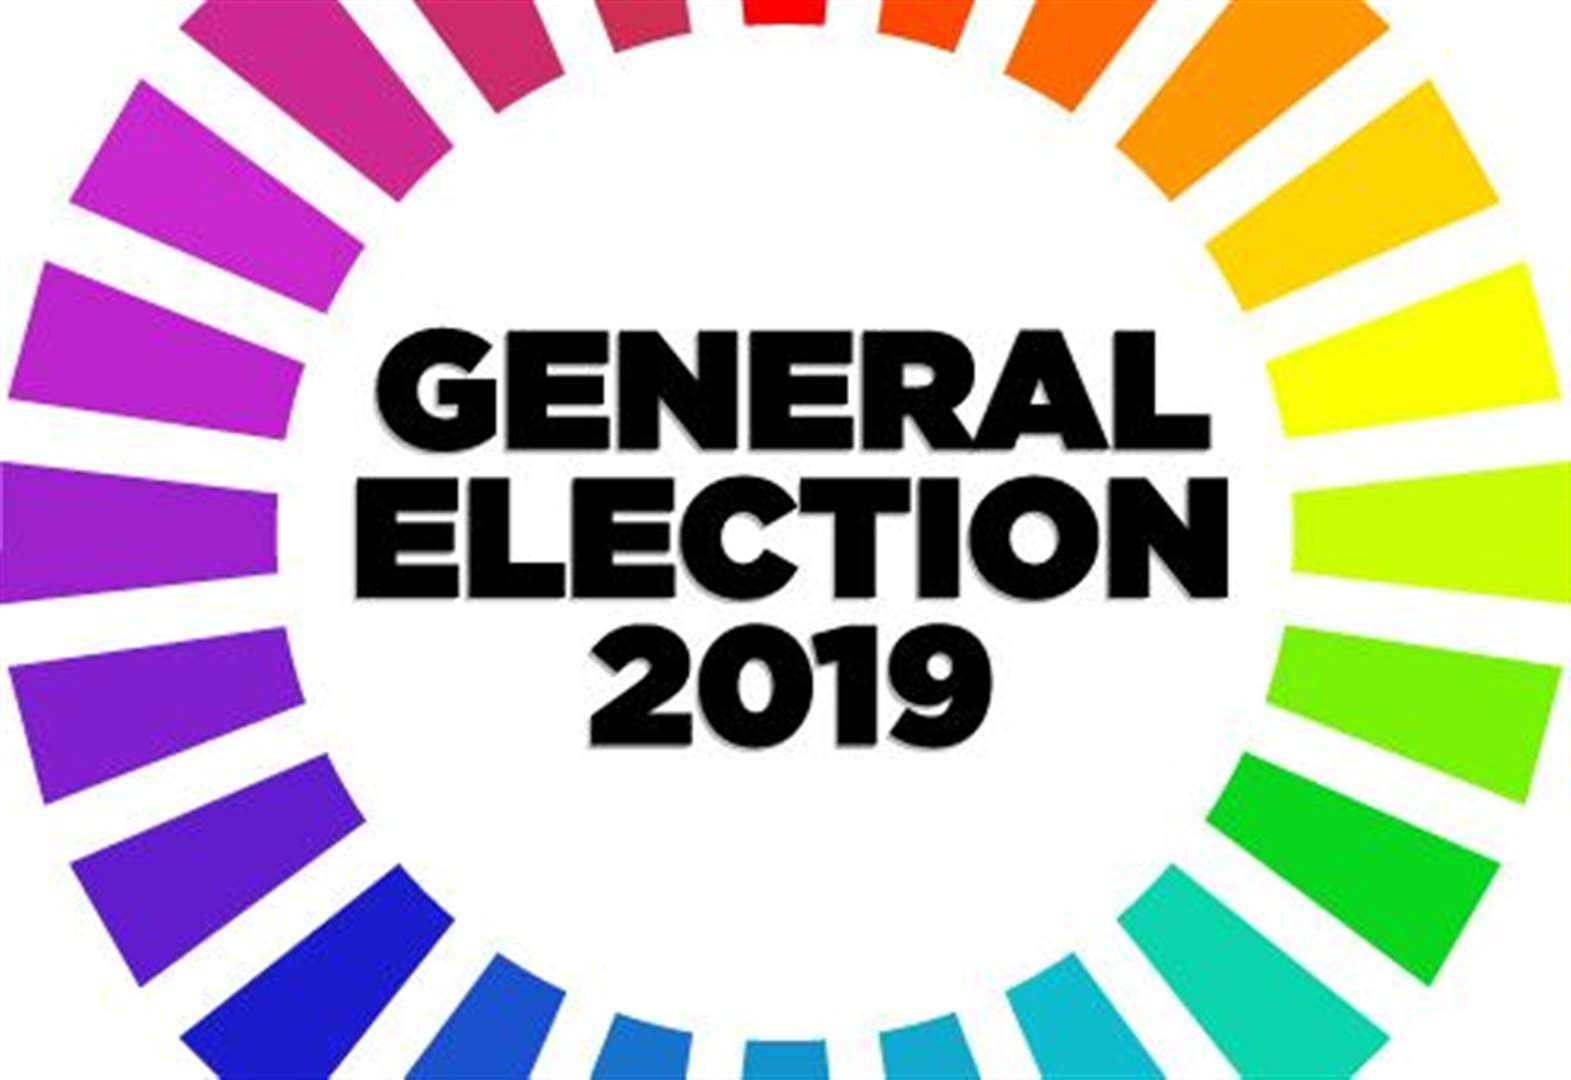 POLL: Who will you vote for in the General Election?